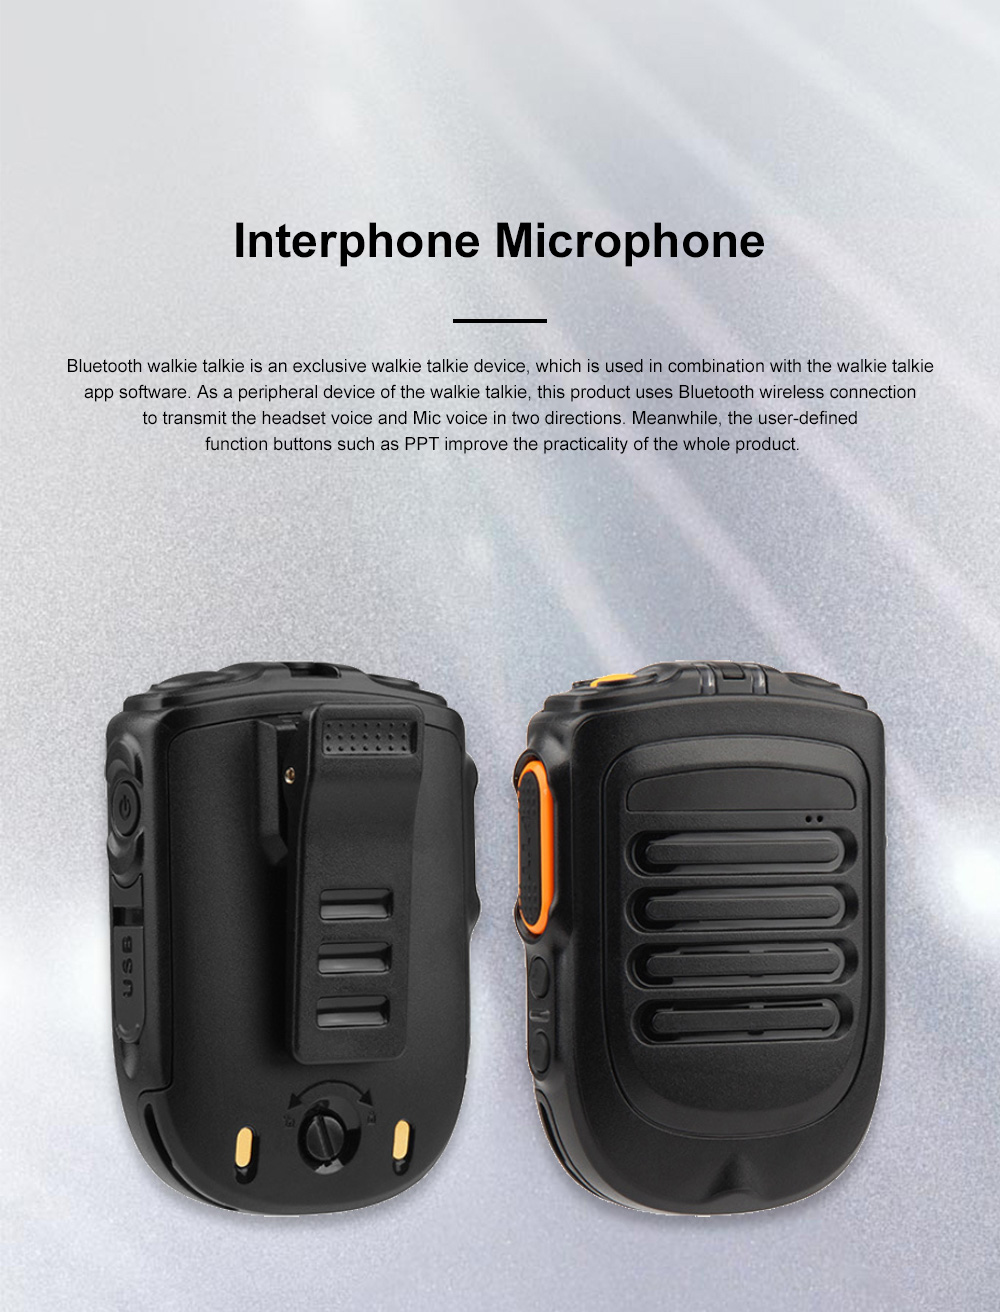 Interphone Microphone Android IOS Mobile Phone Bluetooth Headset Wireless Interphone Handset ZELLO Public Network Portable Walkie Talkie 0